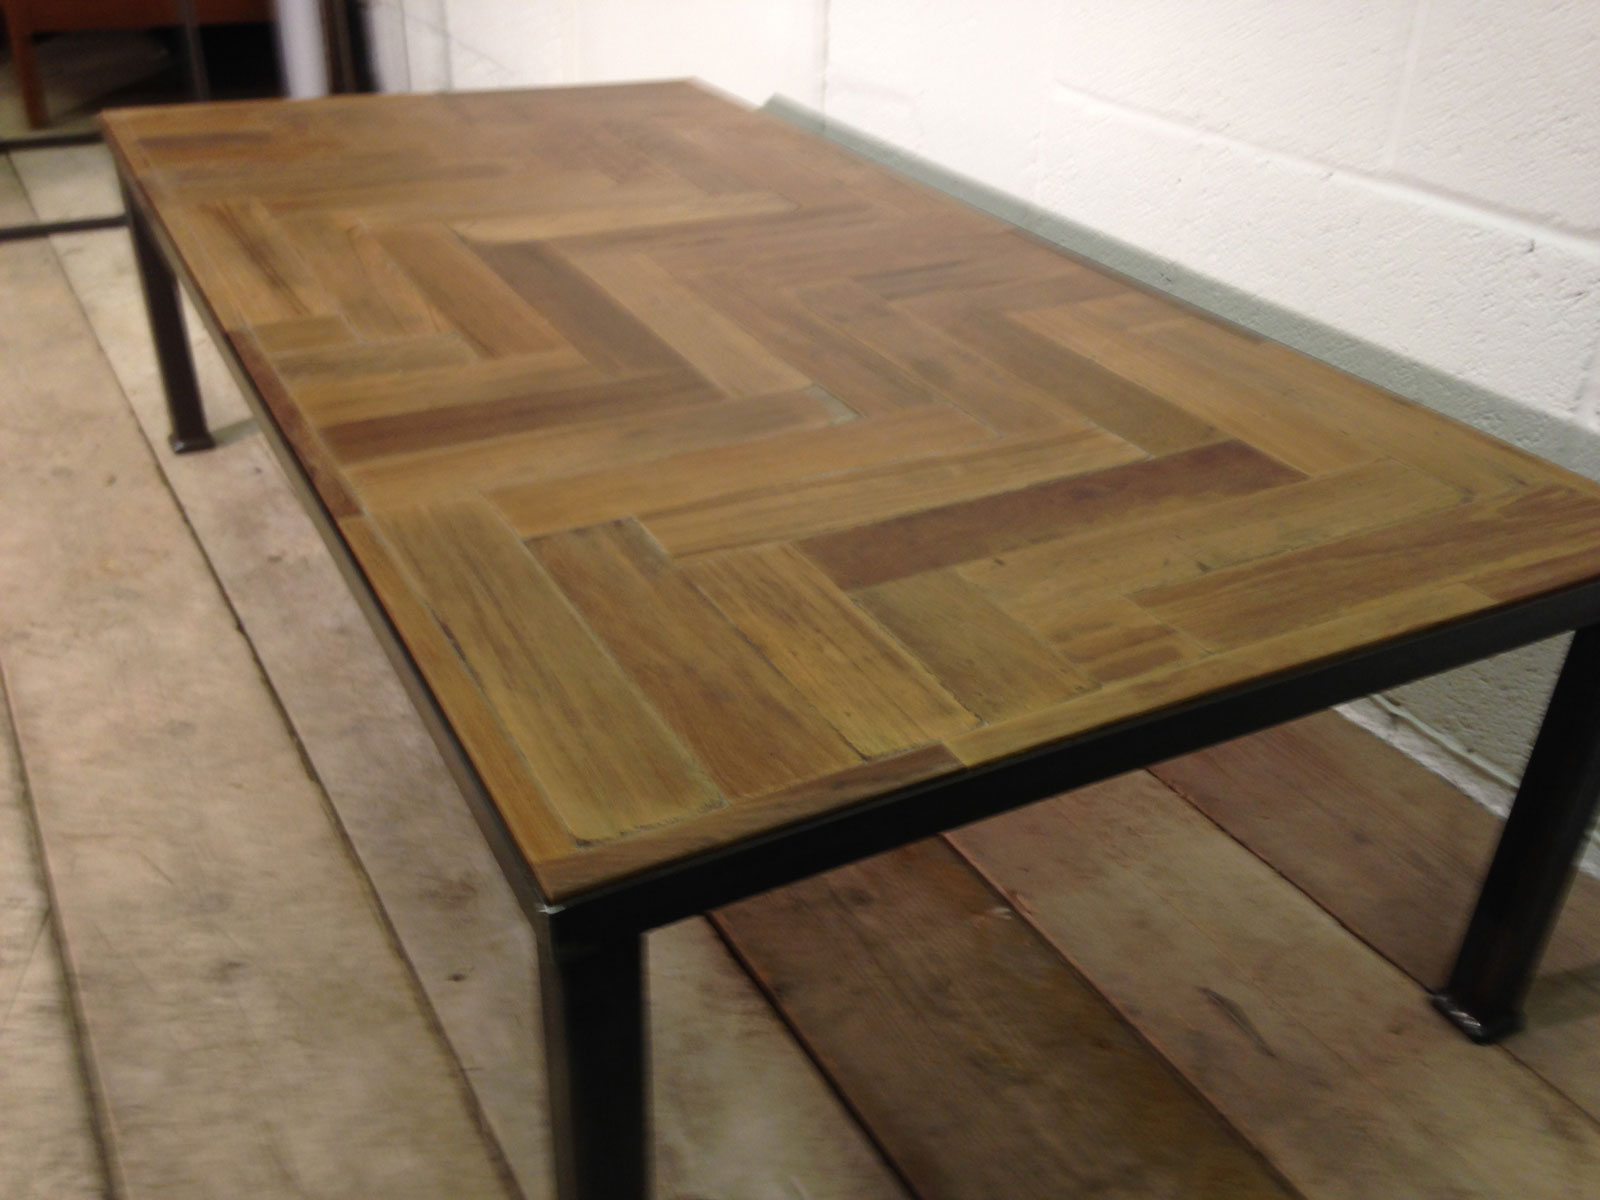 ... Large Reclaimed Parquet Coffee Table. £595.00